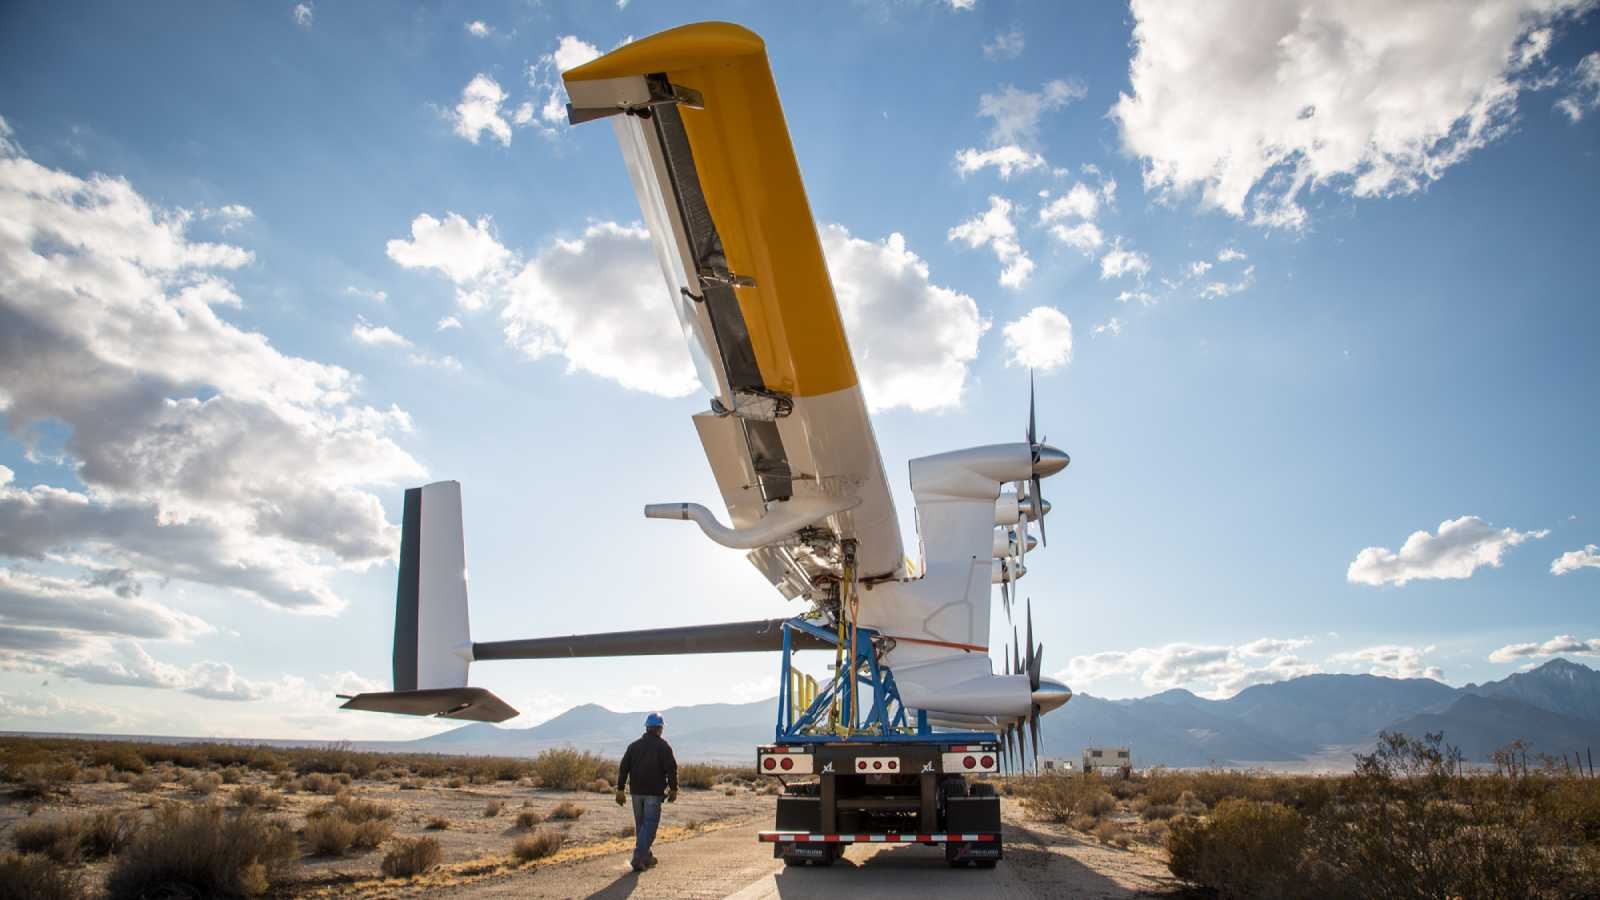 Could these high-altitude drones provide reliable, clean electricity?